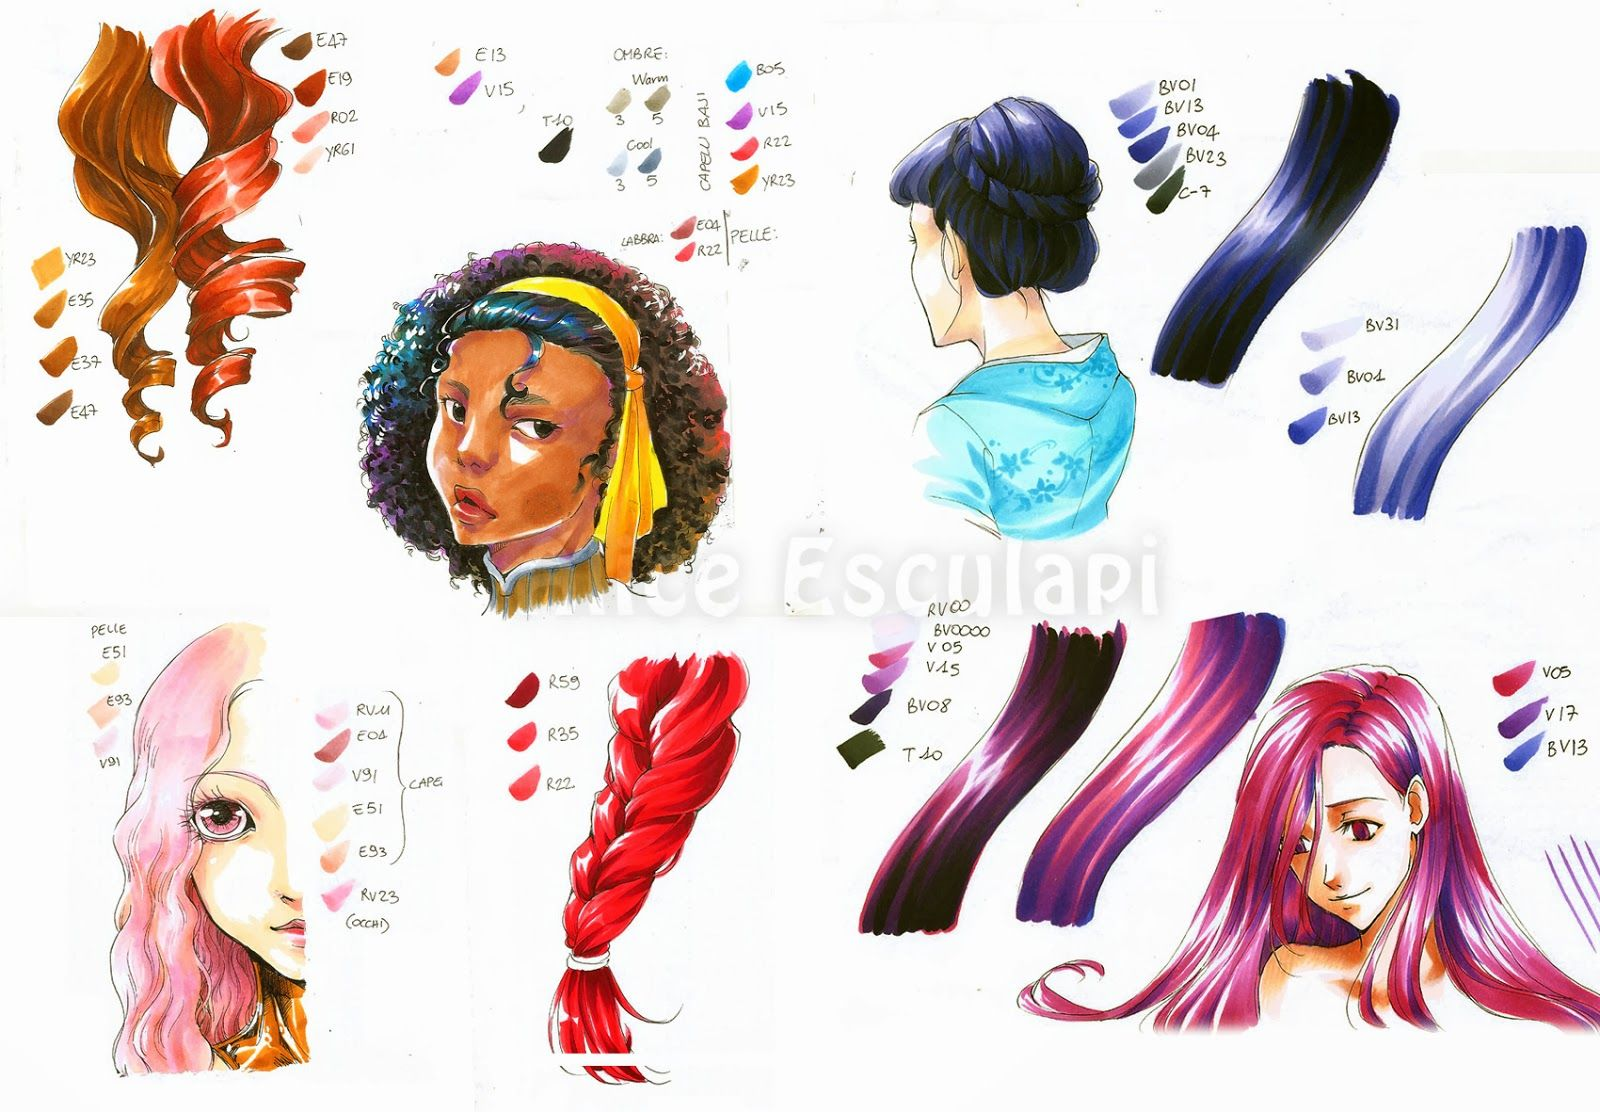 Copic Italia Tutorial Come Colorare I Capelli In Stile Manga